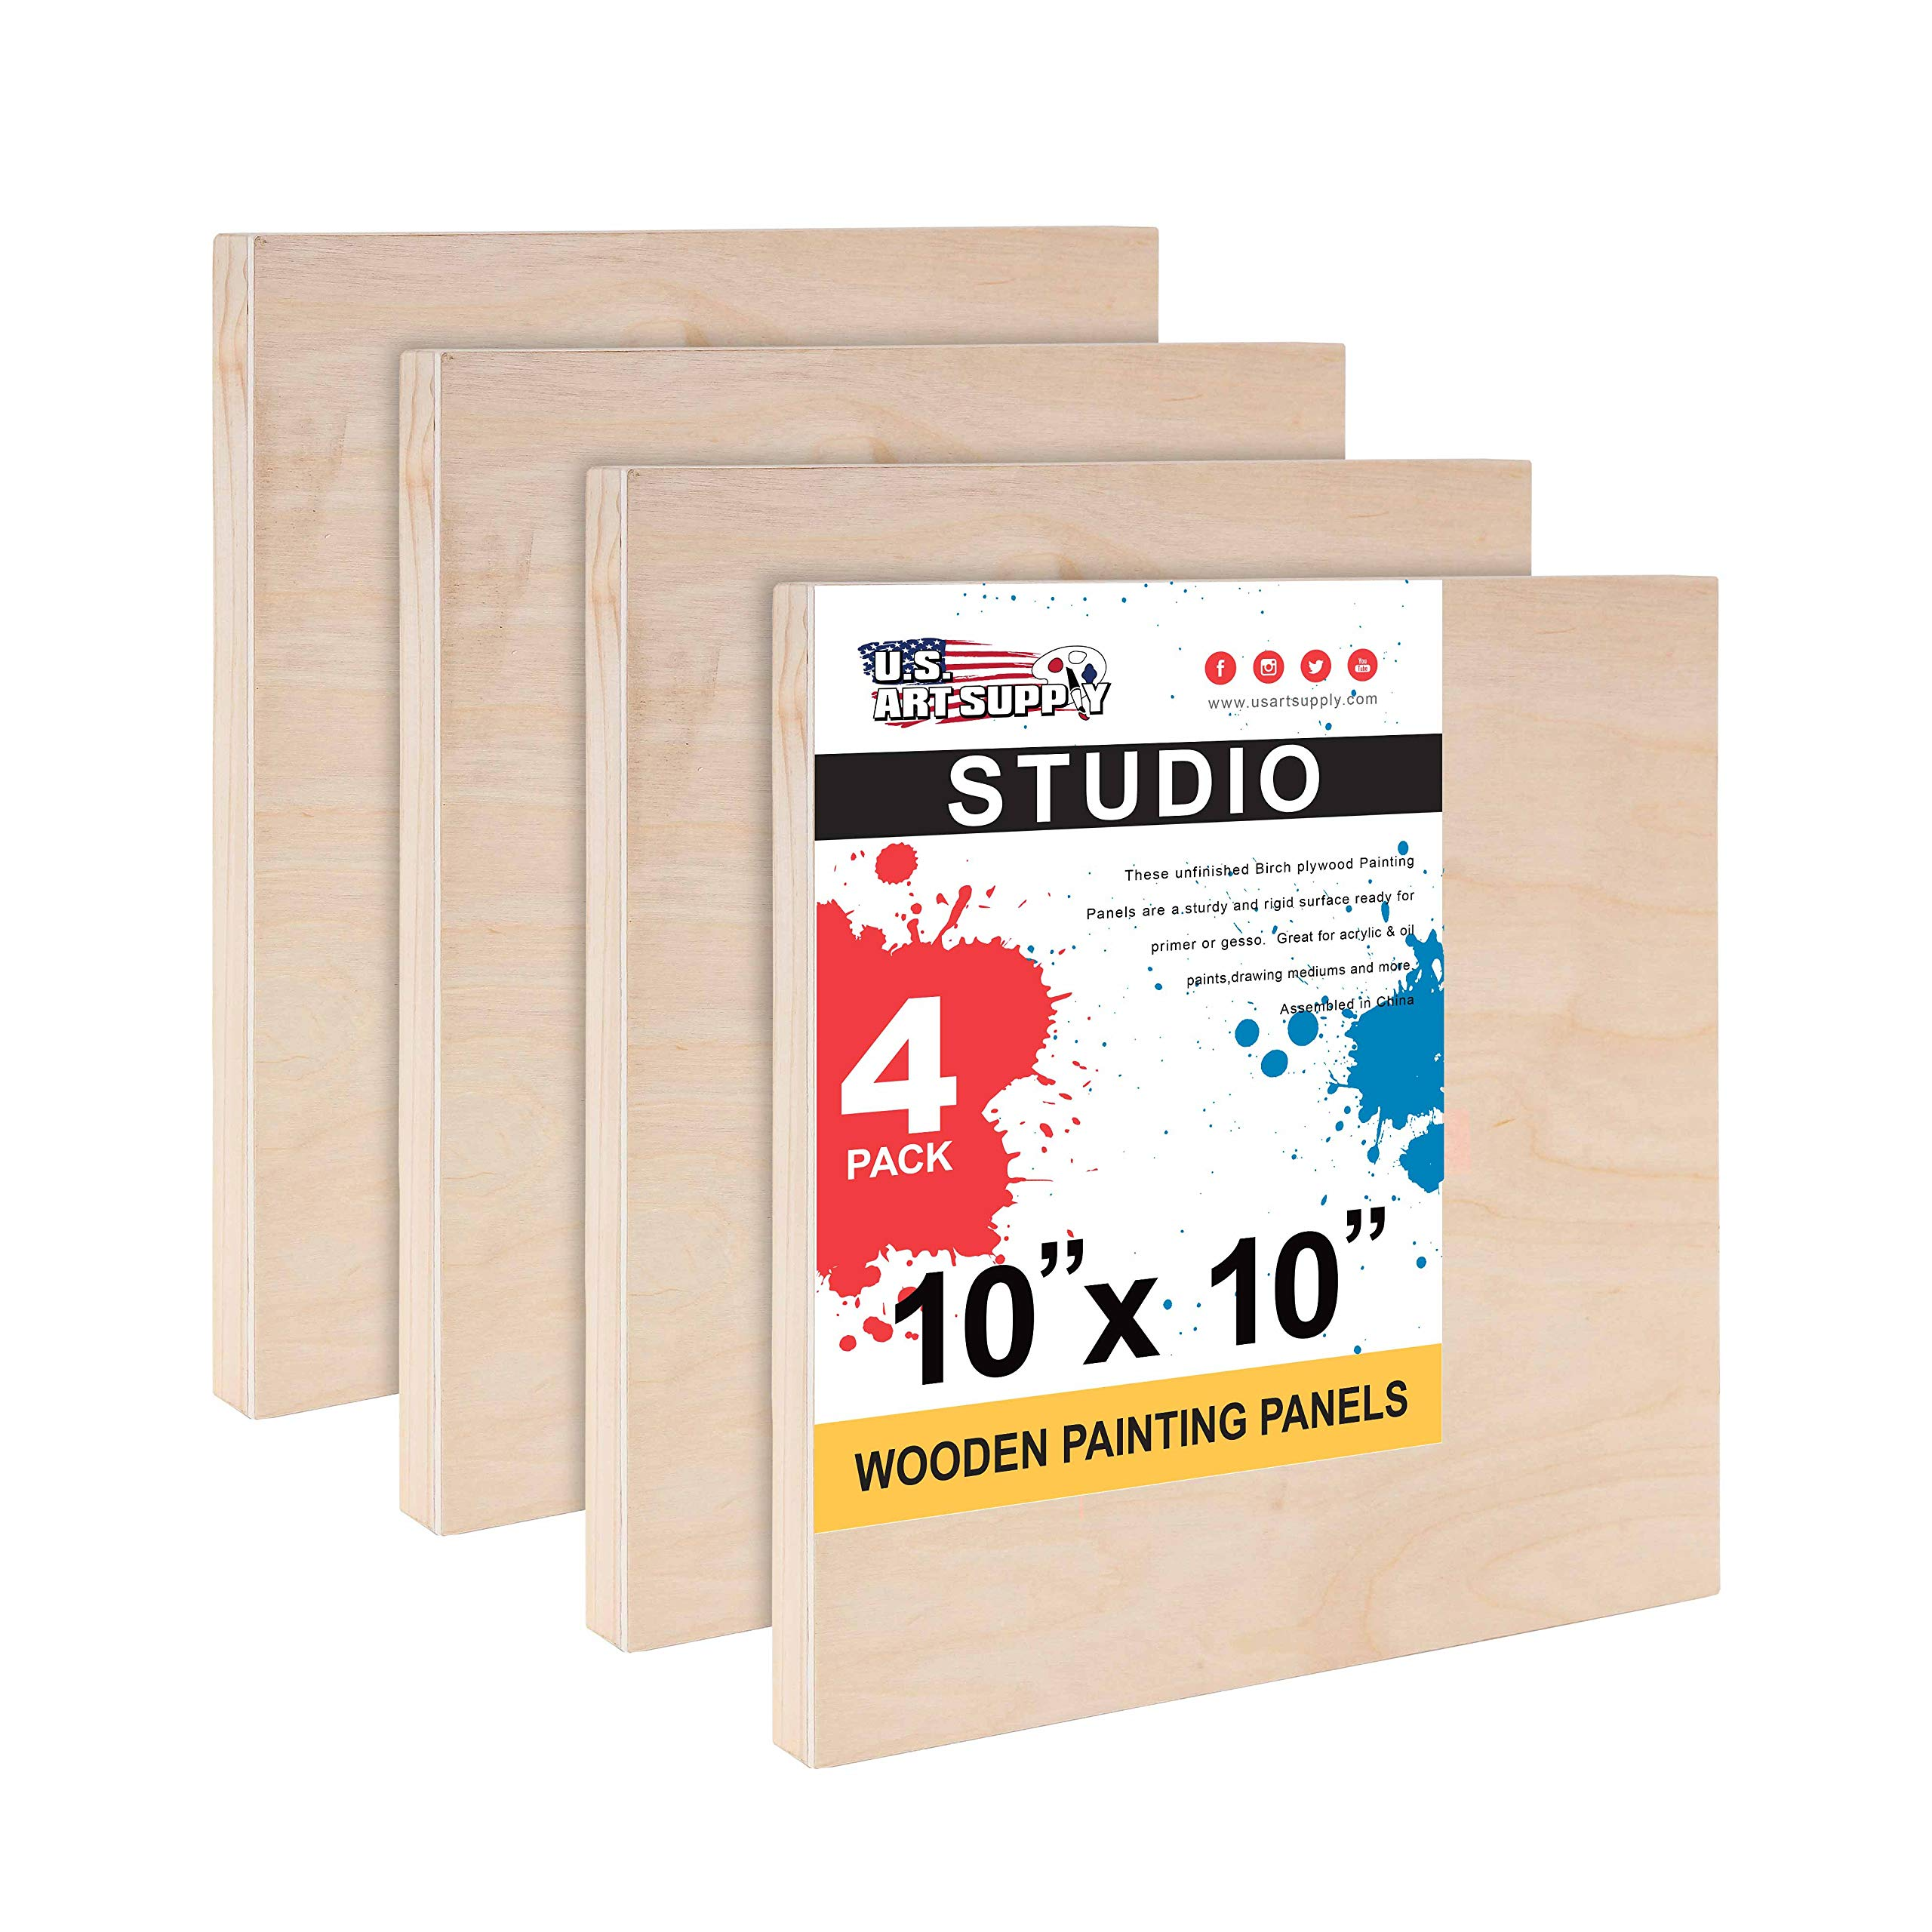 """U.S. Art Supply 10"""" x 10"""" Birch Wood Paint Pouring Panel Boards, Studio 3/4"""" Deep Cradle (Pack of 4) - Artist Wooden Wall Canvases - Painting Mixed-Media Craft, Acrylic, Oil, Watercolor, Encaustic"""